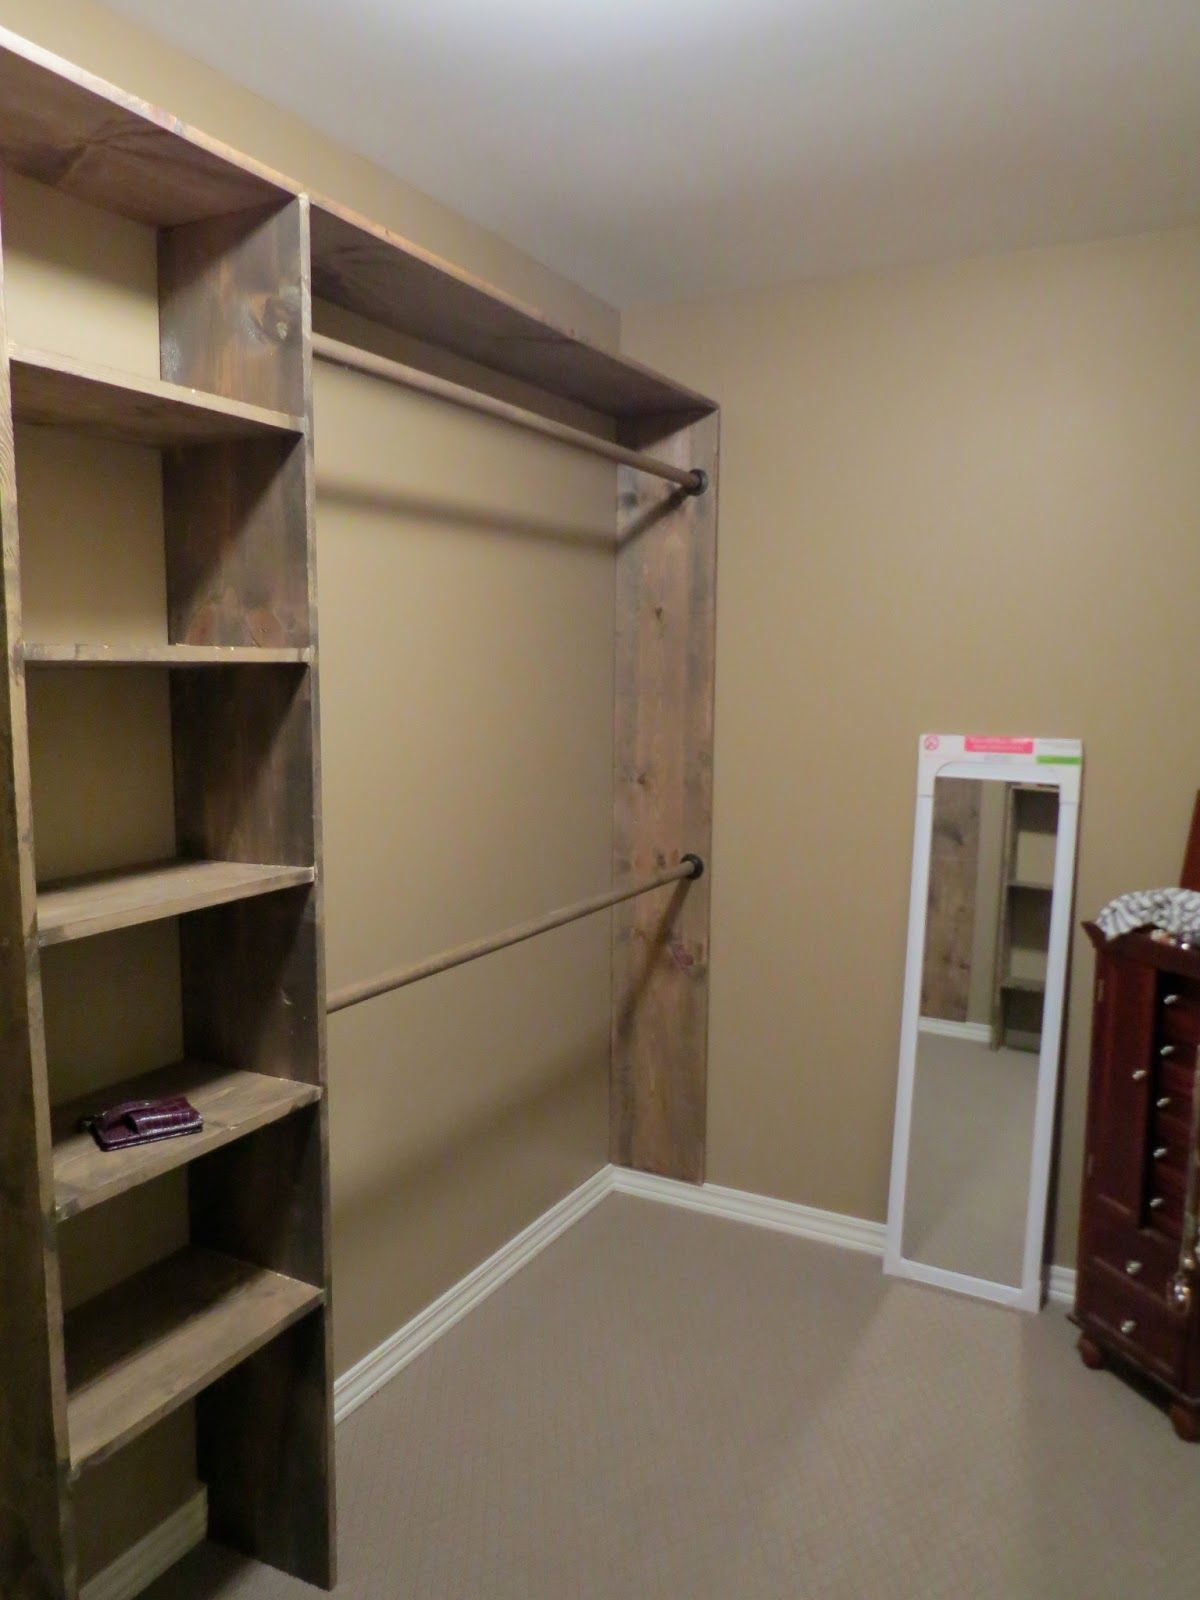 Let S Just Build A House Walk In Closets No More Living Out Of Laundry Baskets Closet Organization Cheap Closet Organization Diy Closet Remodel